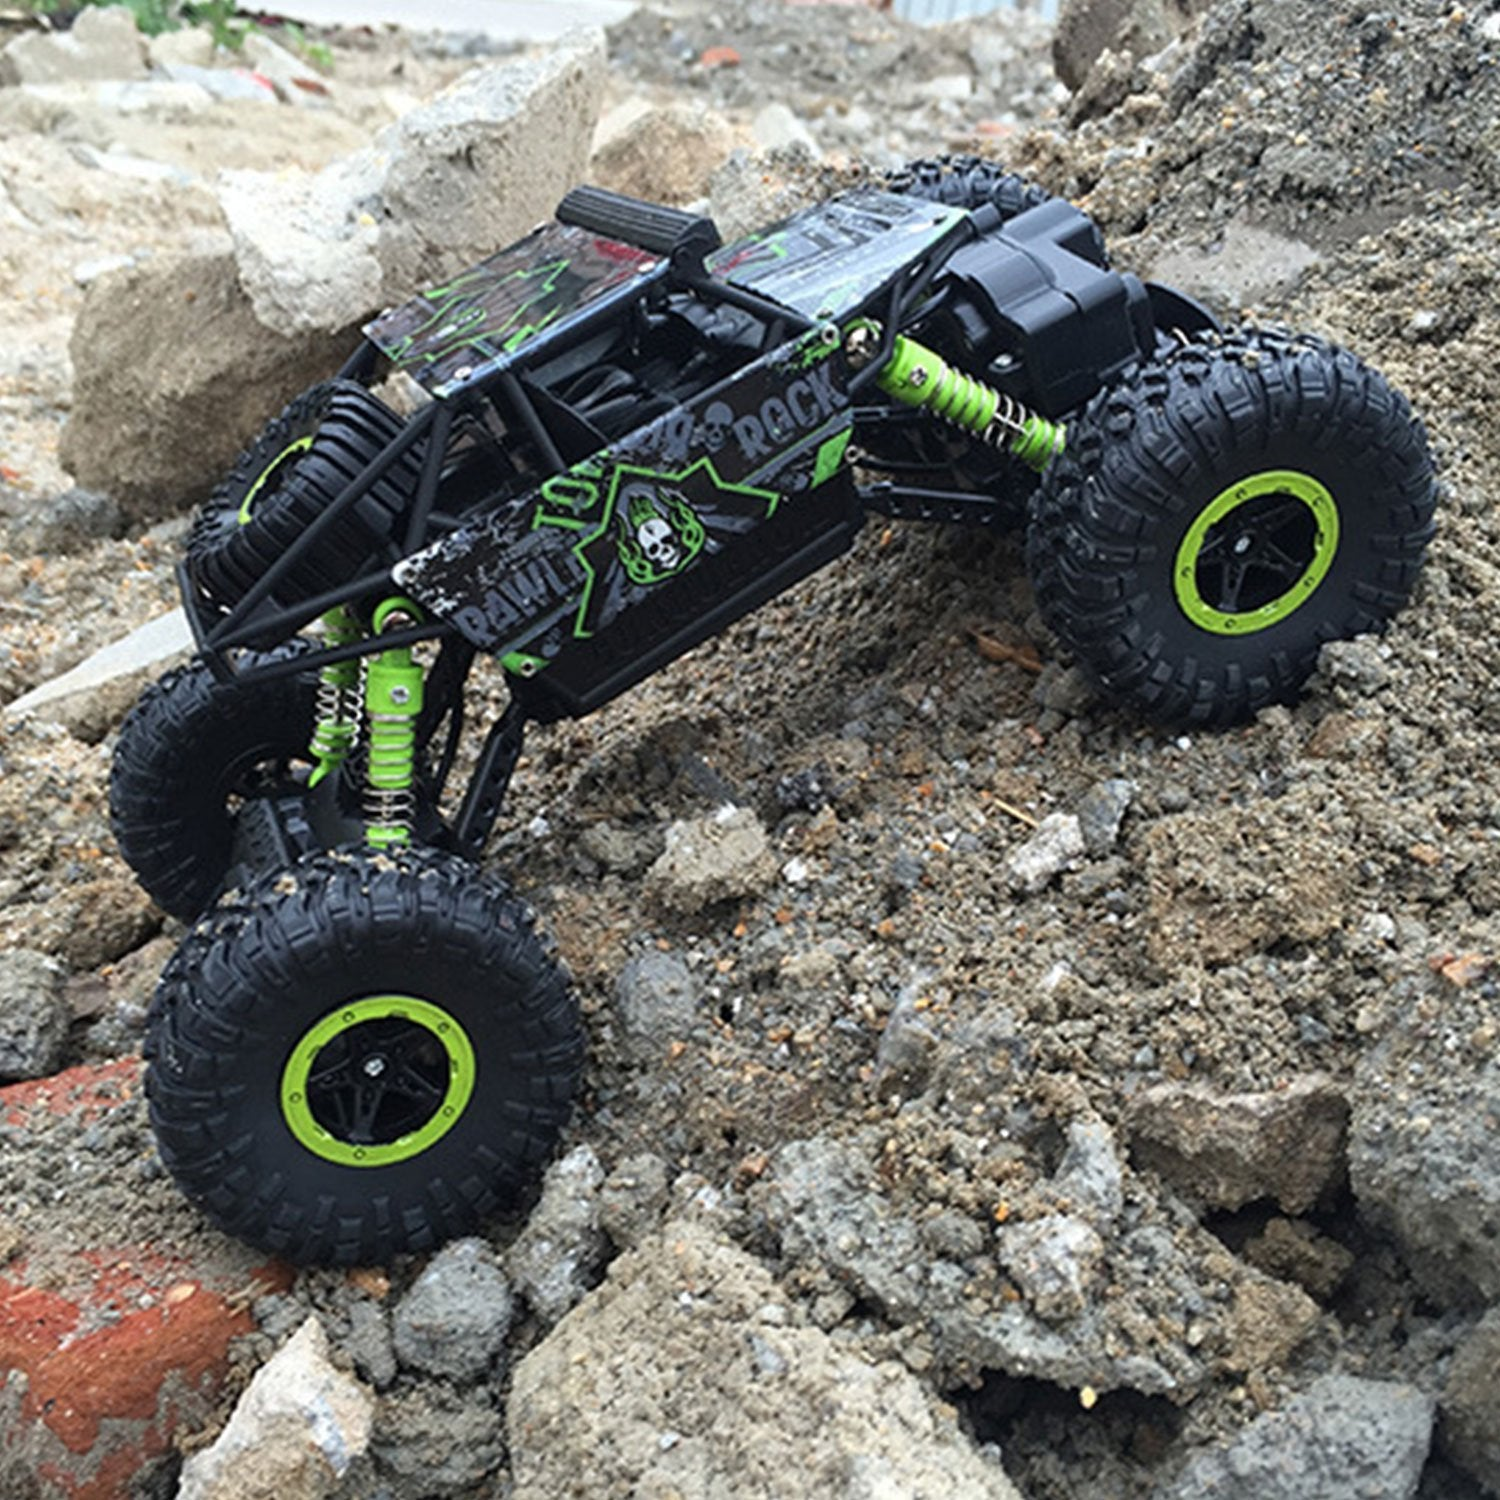 4 WHEEL DRIVE 2.4 GHz RADIO CONTROL 1/18 RC CAR